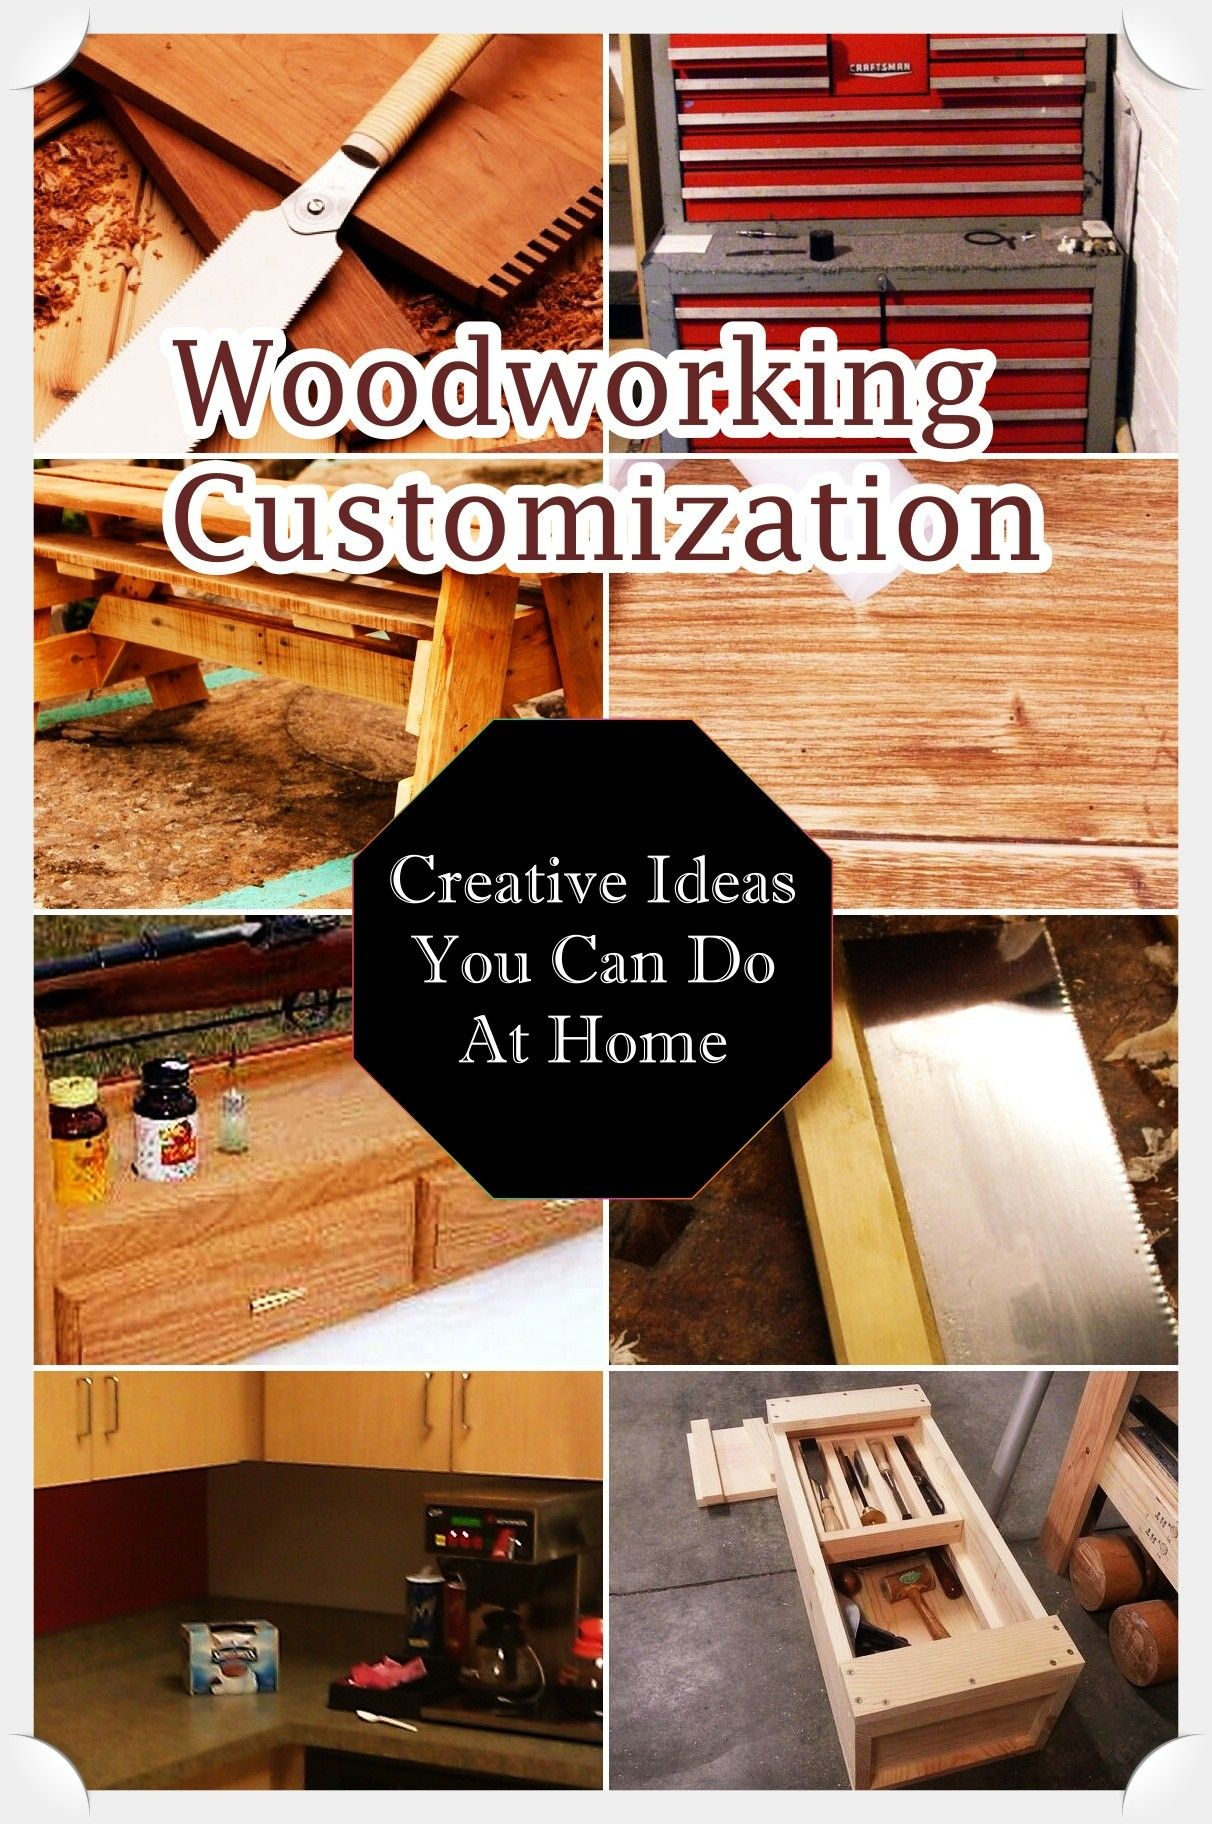 Woodworking Magazines In 2020 Woodworking Magazine Fine Woodworking Magazine Woodworking Terms